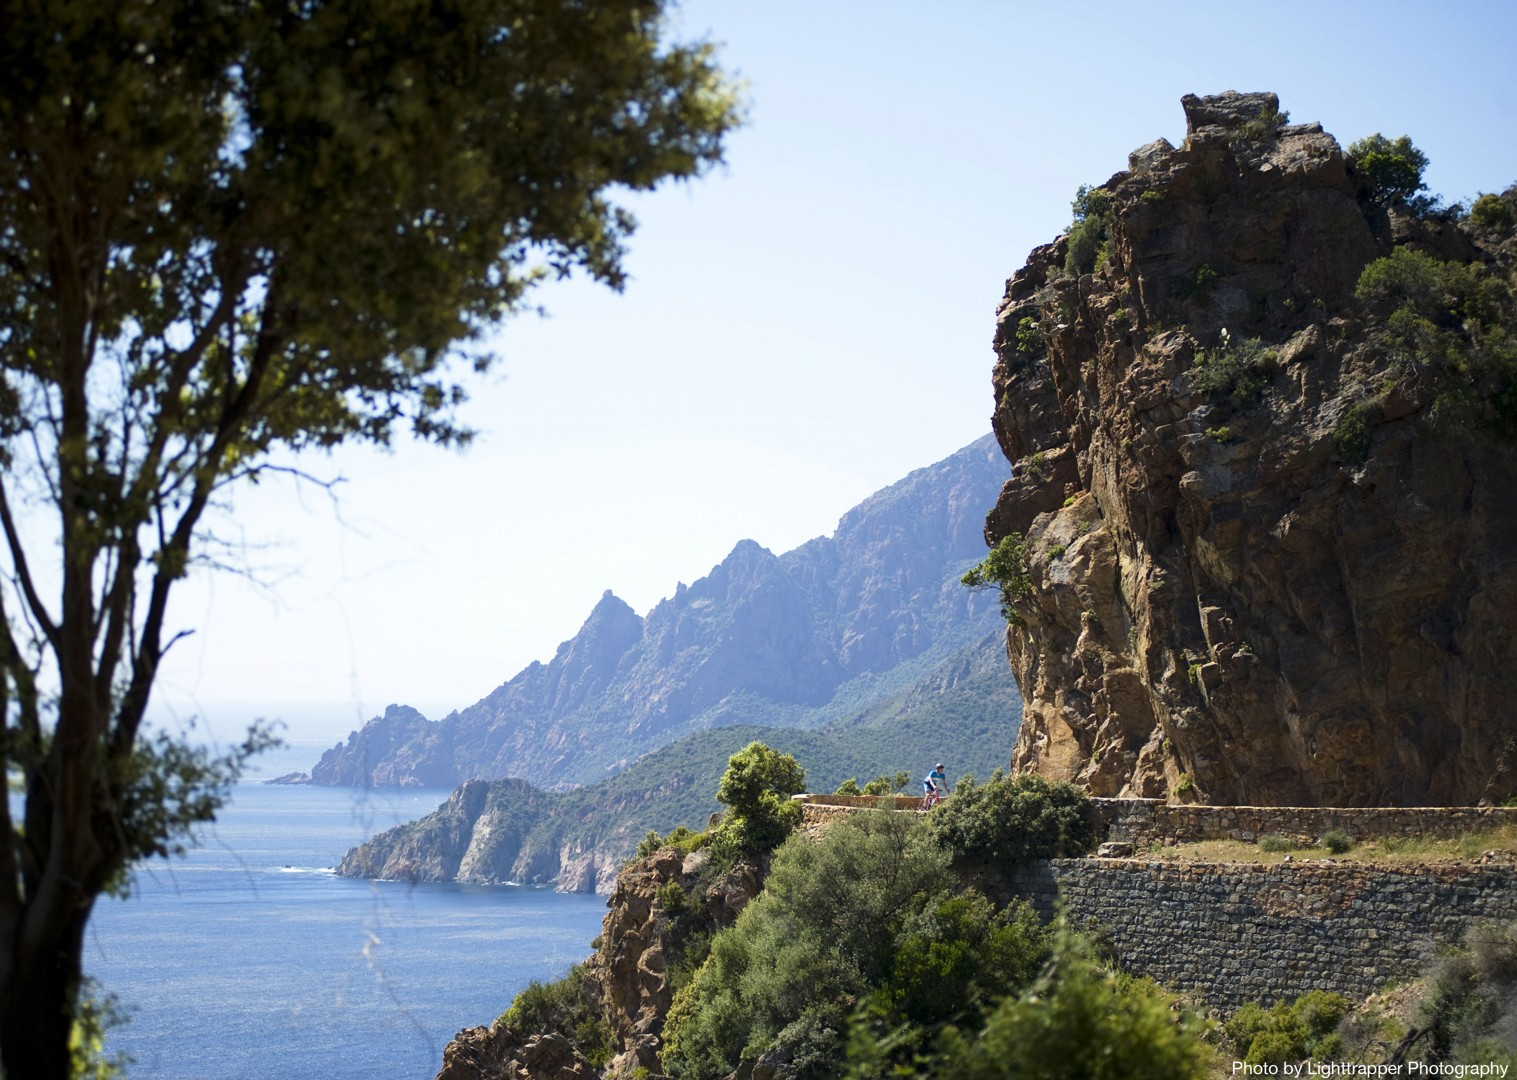 corsica-guided-road-cycling-holiday-the-beautiful-isle-mediterranean.jpg - France - Corsica - The Beautiful Isle - Road Cycling